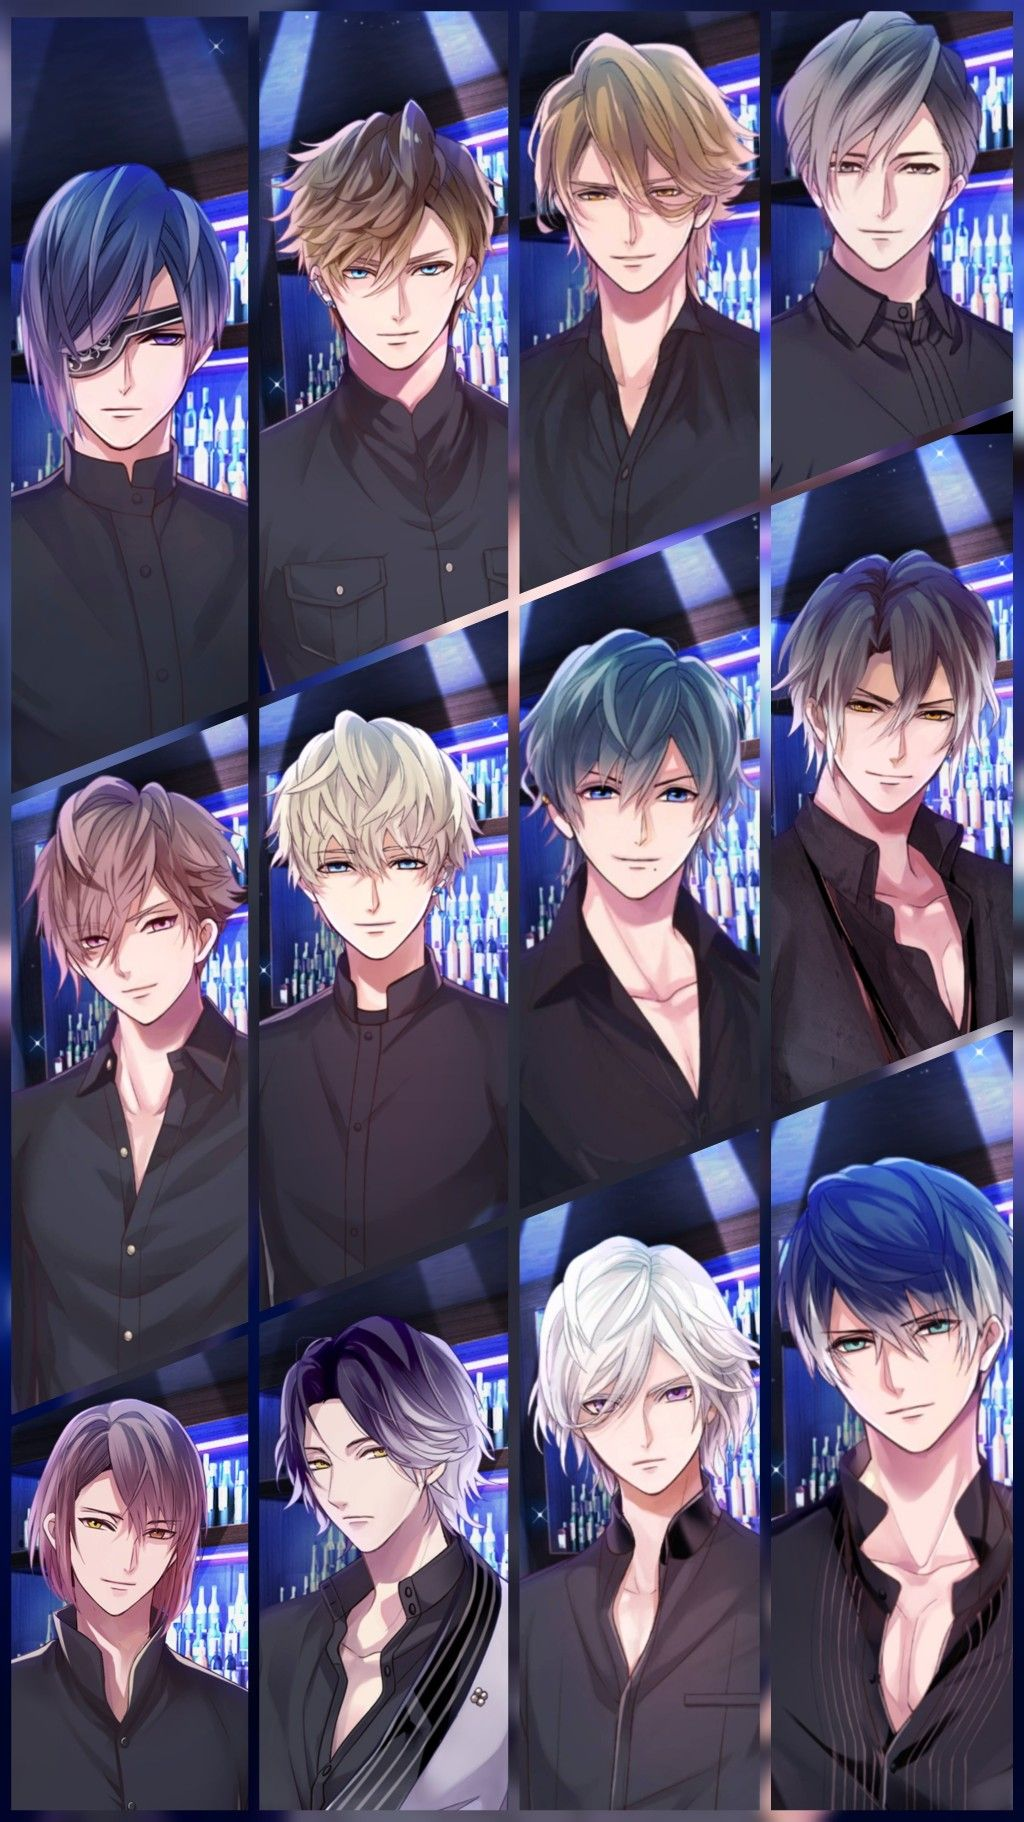 Pin By Samantha Peterson On Anime Handsome Anime Guys Handsome Anime Cute Anime Guys